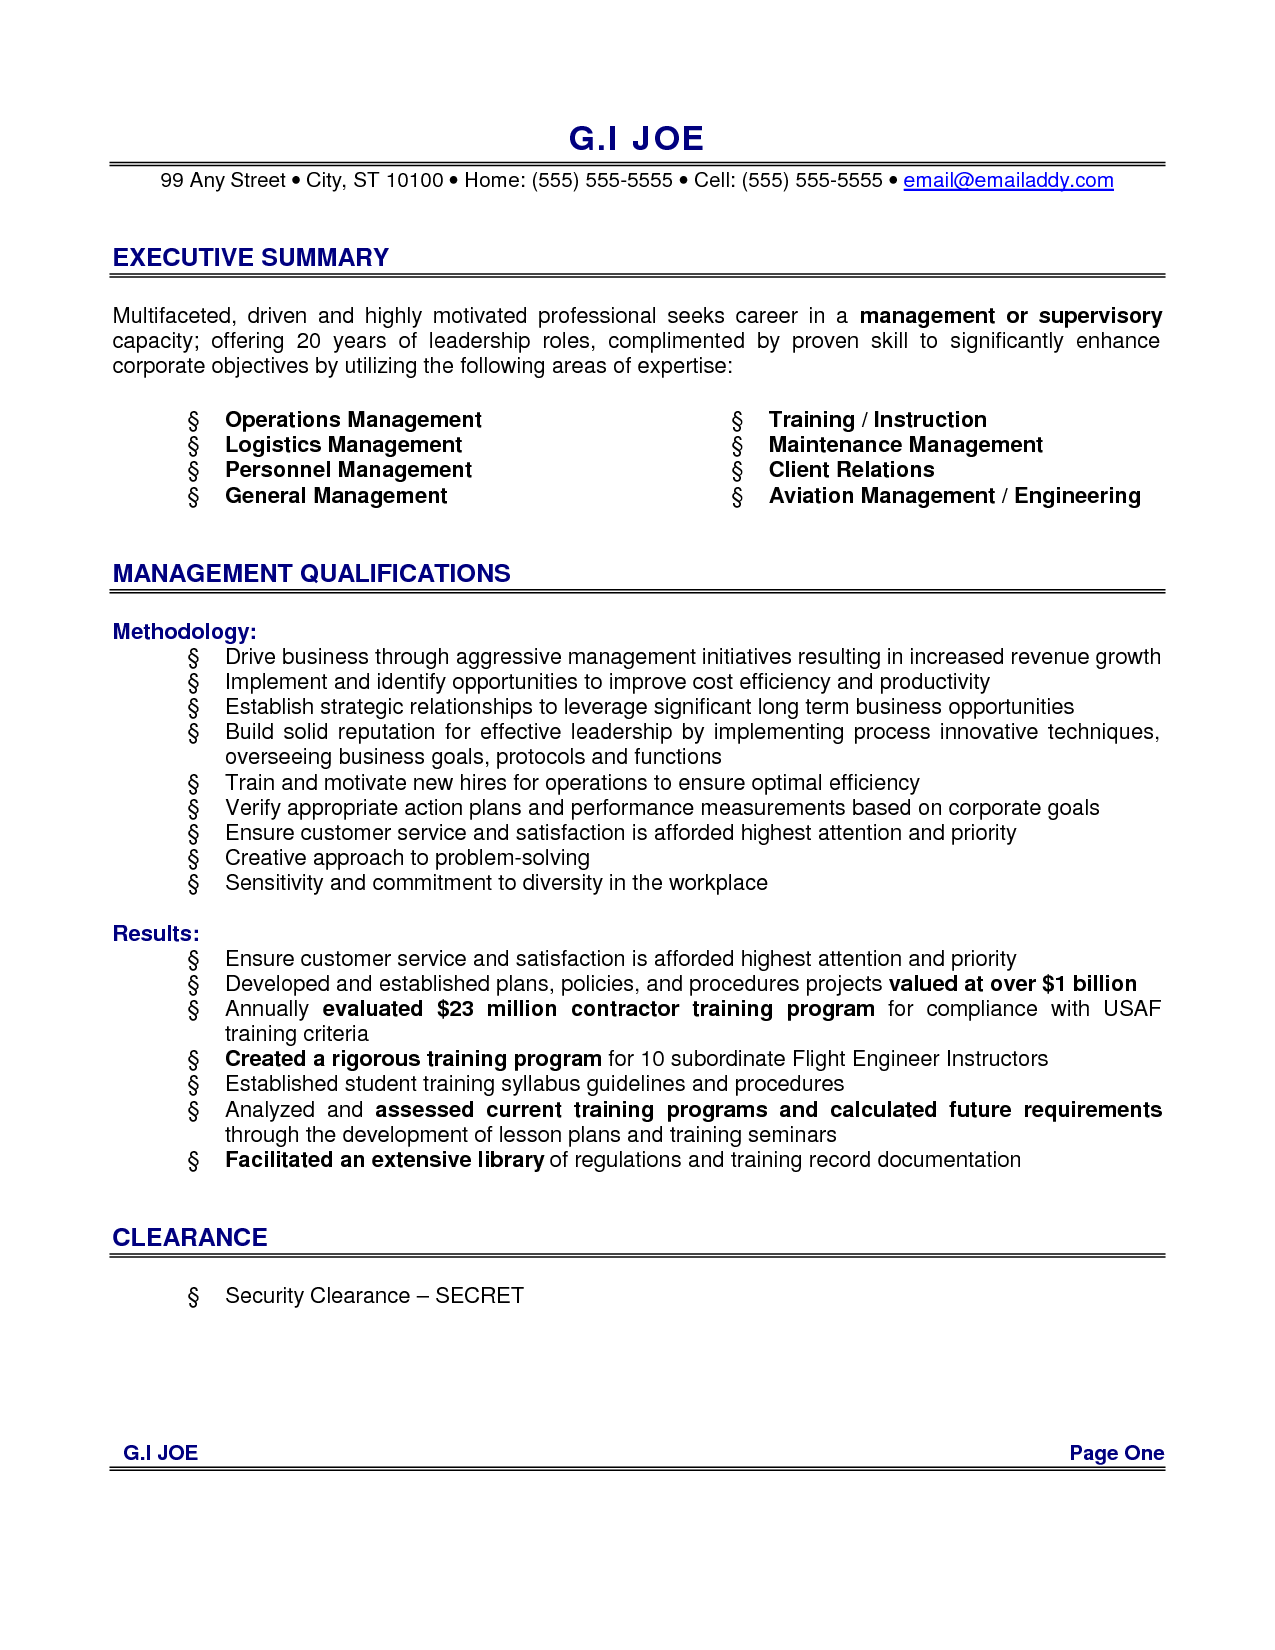 Examples For Resume Resume Examples For Executive Summary With Management